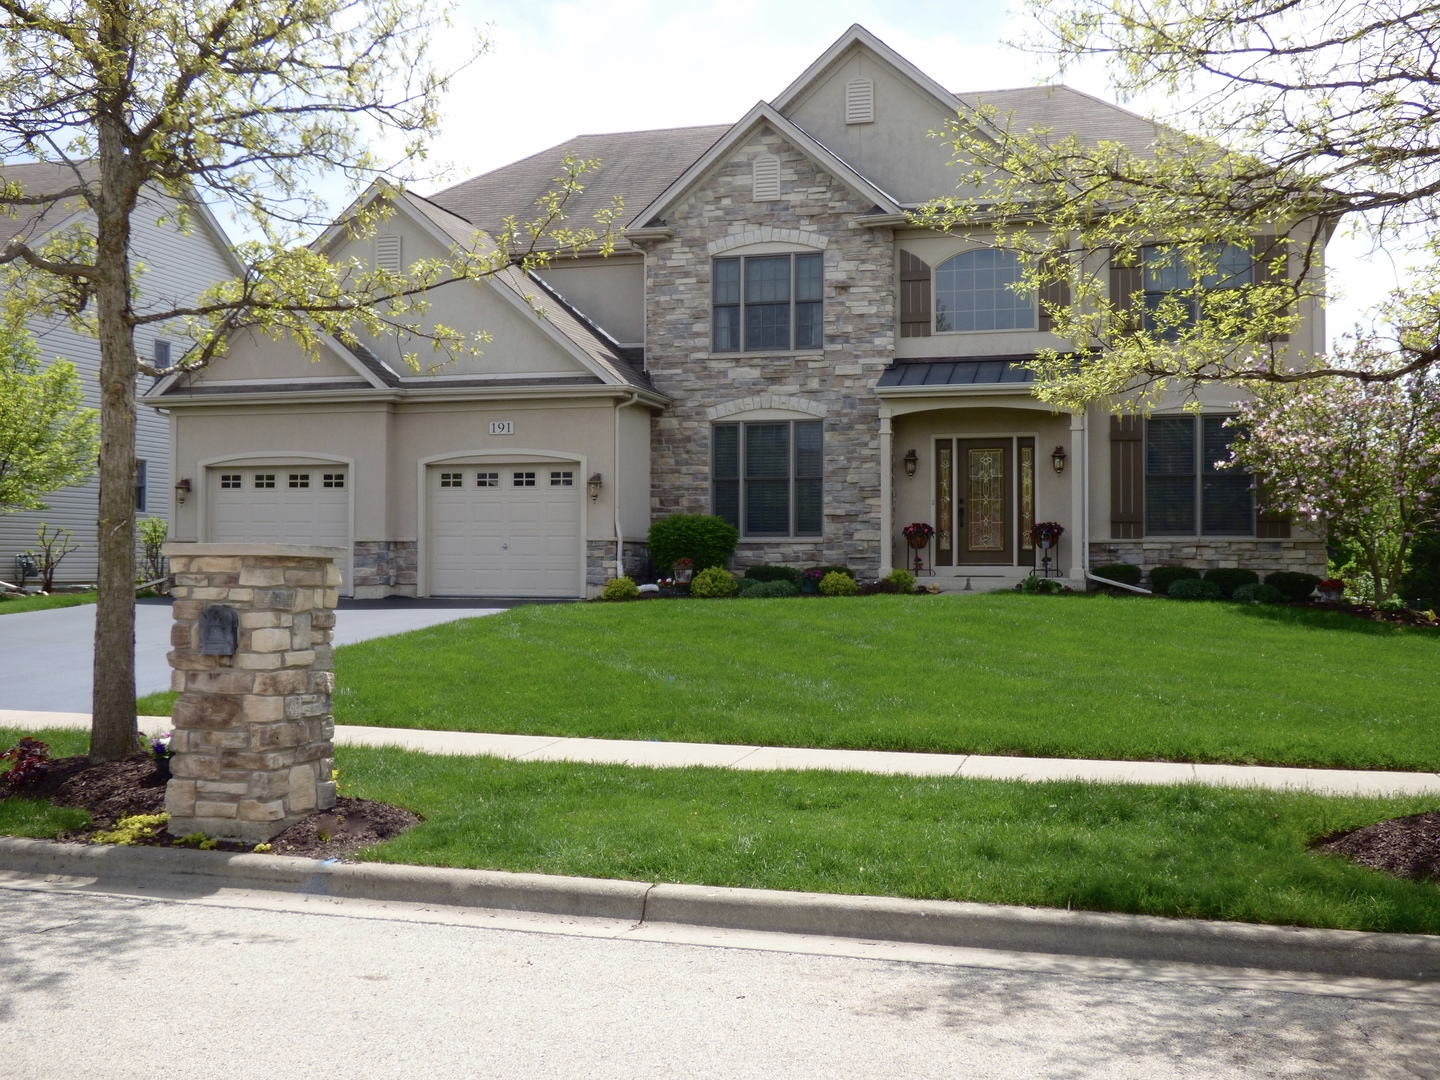 191 Melody ,Bartlett, Illinois 60103